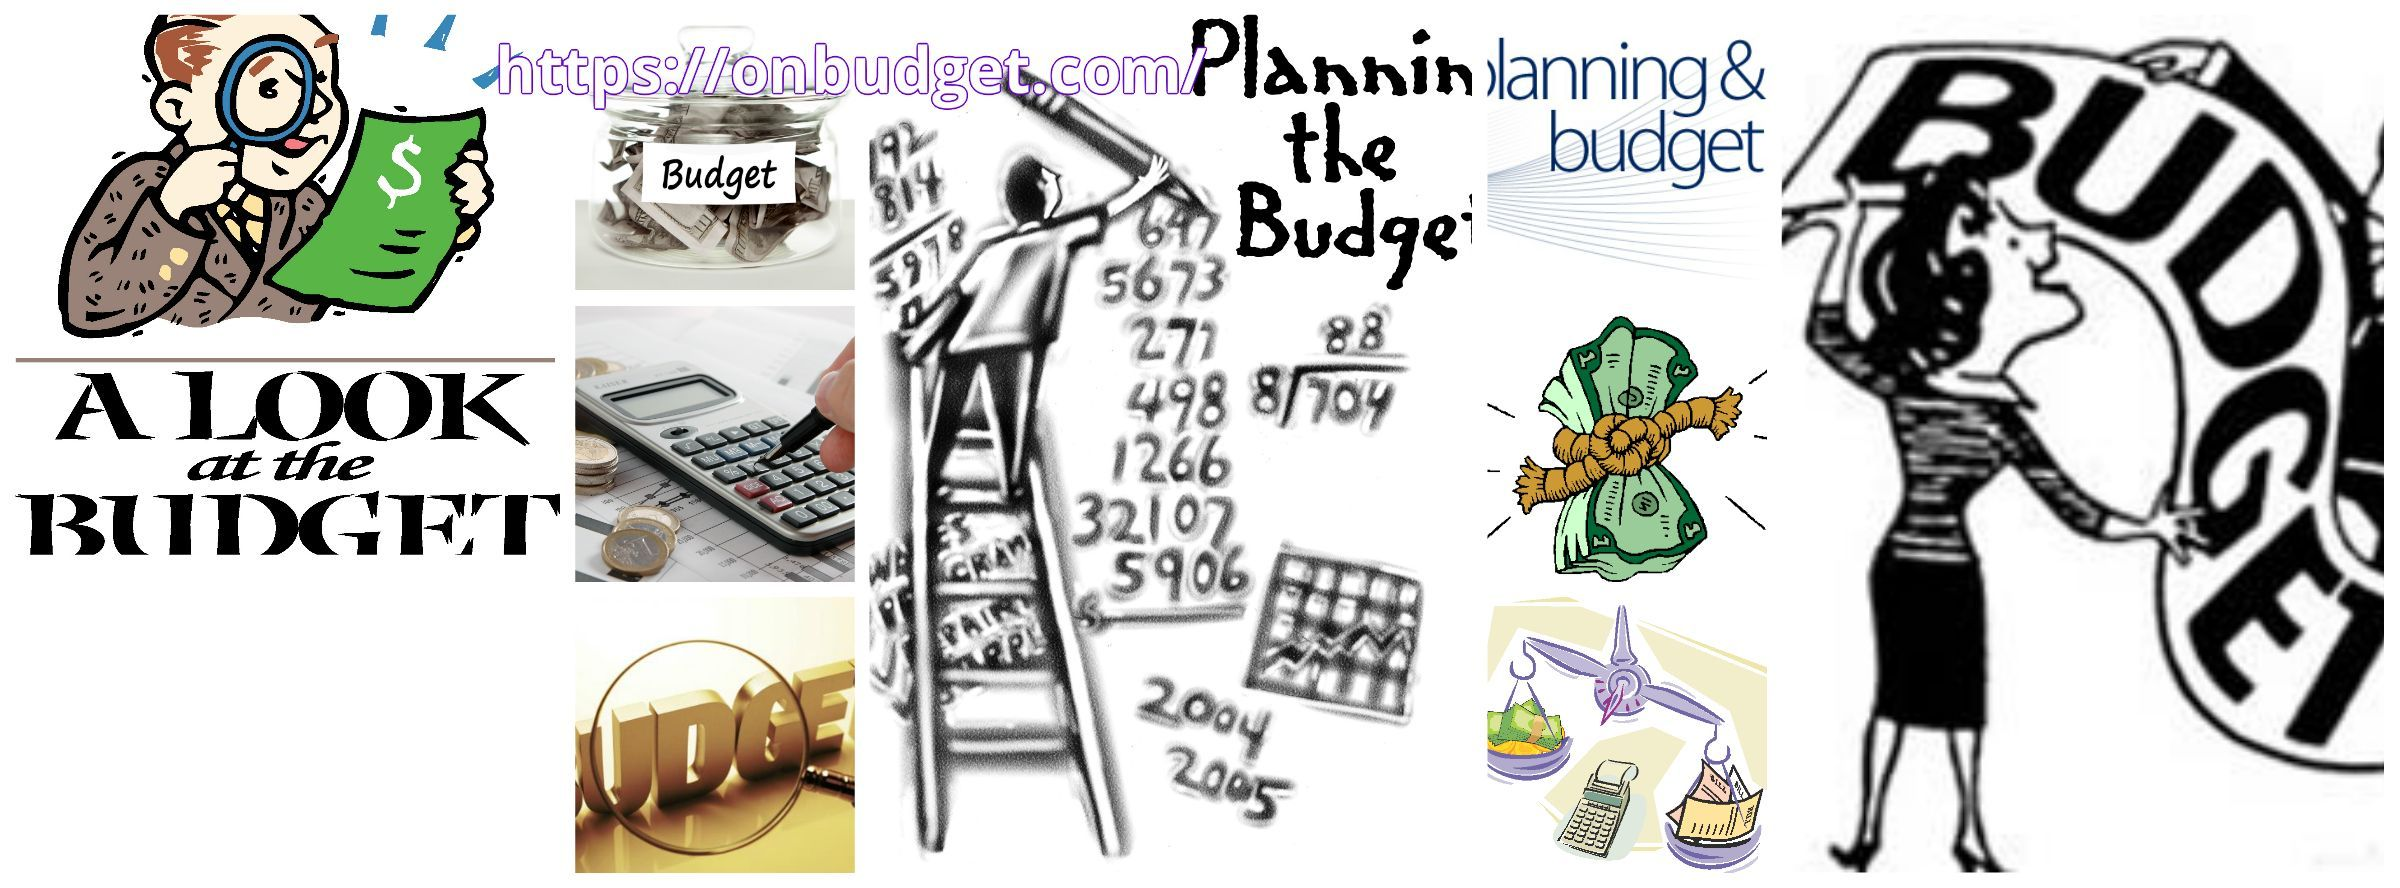 S Onbudget Budget Template Helps People To